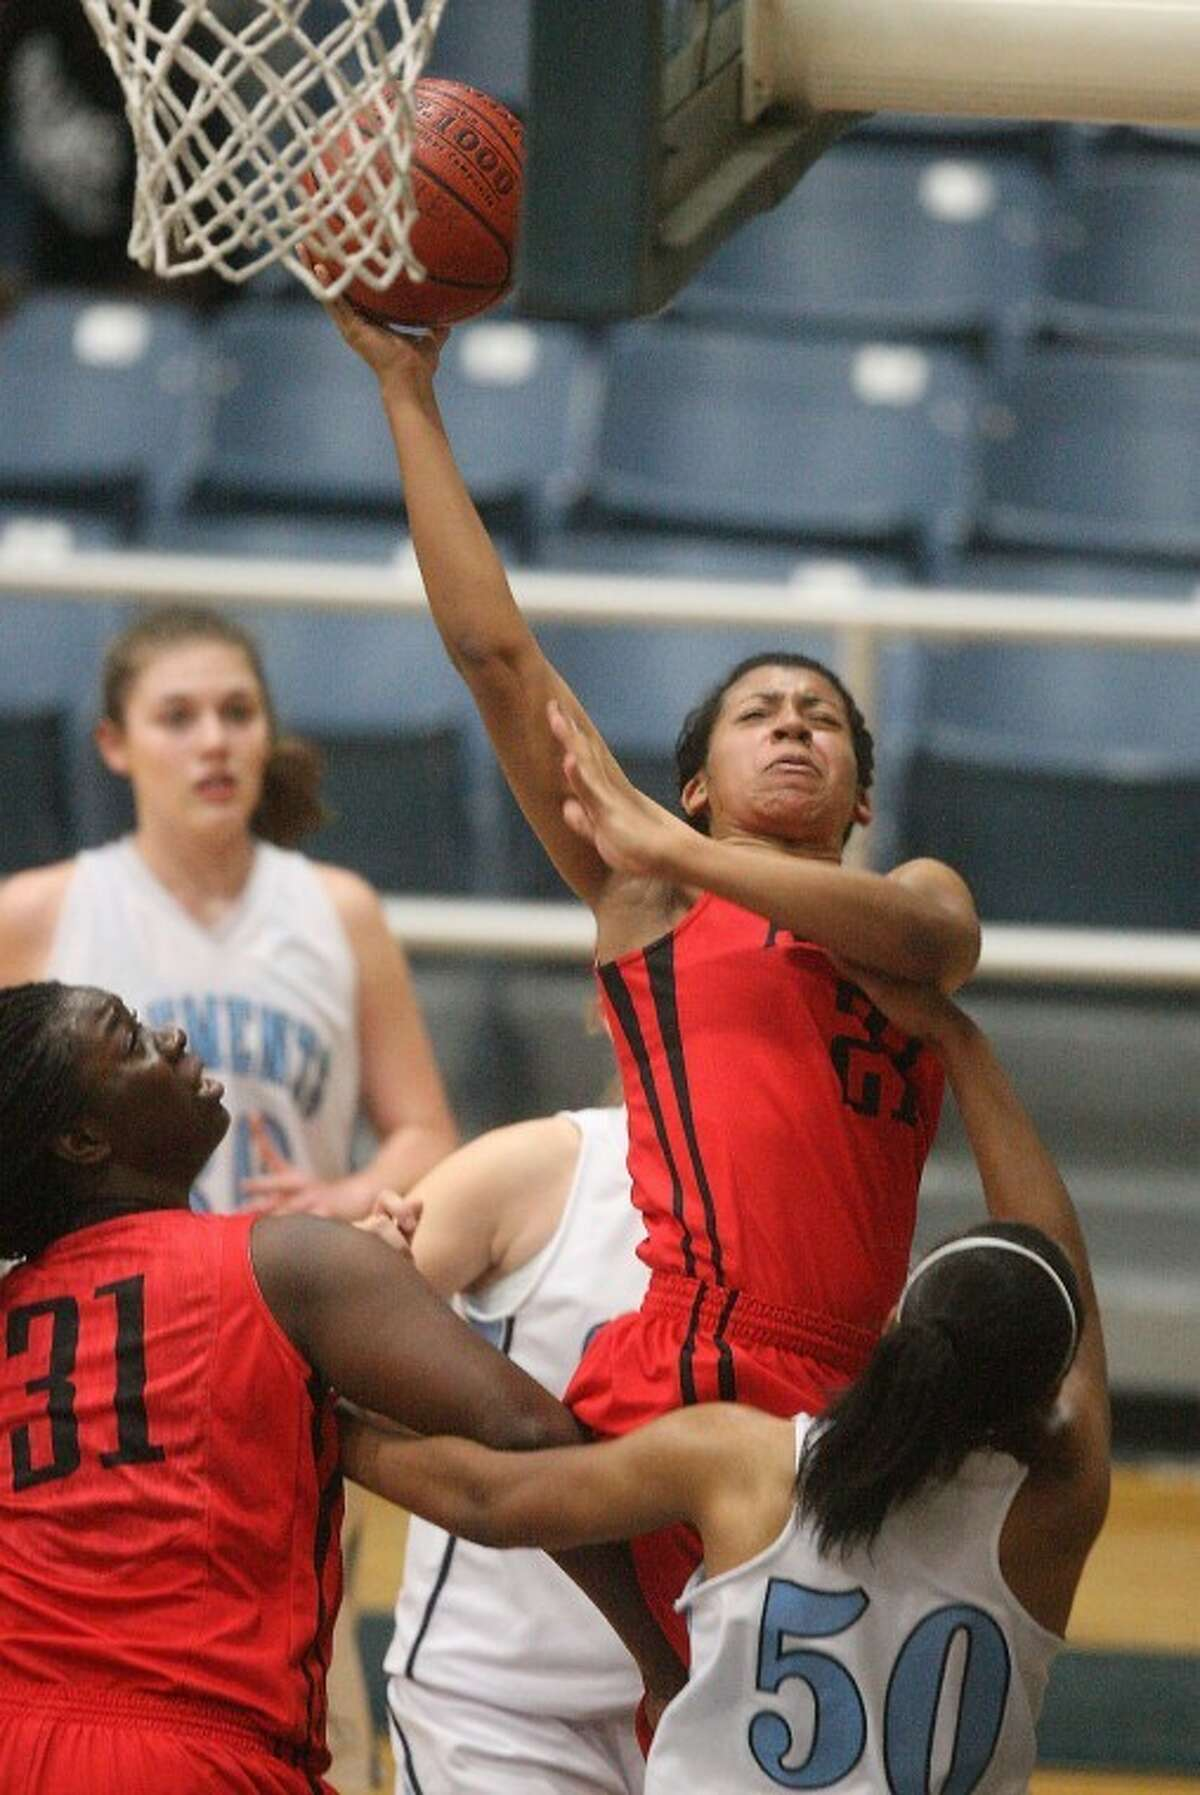 Natalie McGaughey led Austin with 20 points on Thursday as the Lady Bulldogs earned a pivotal victory over Clements. (Photo by Patric Schneider)